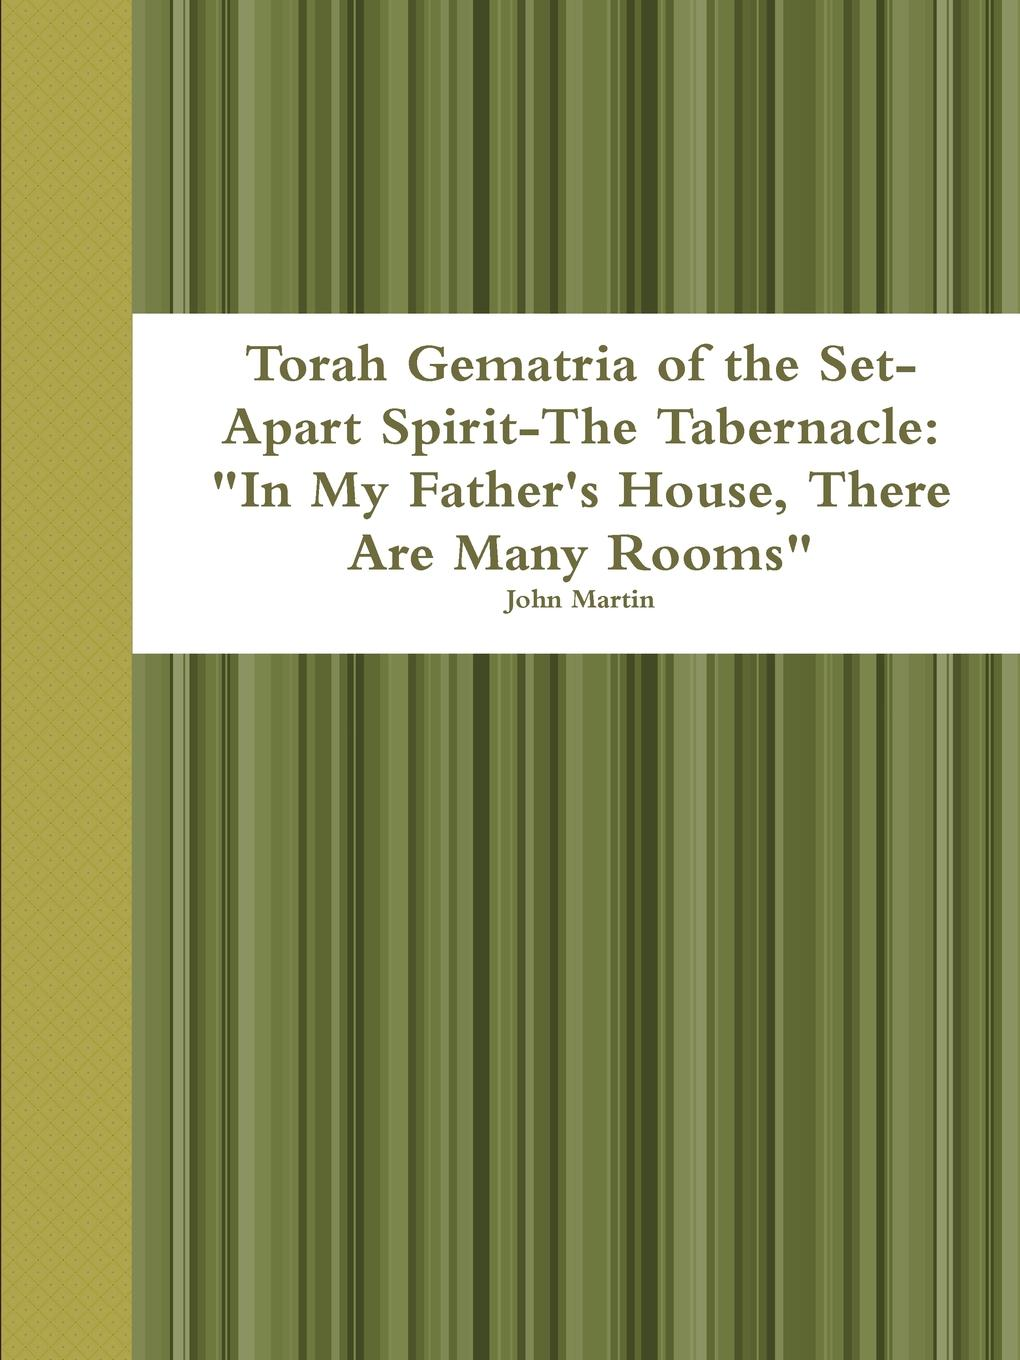 John Martin Torah Gematria of the Set-Apart Spirit-The Tabernacle. In My Father.s House, There Are Many Rooms fruit of the earth